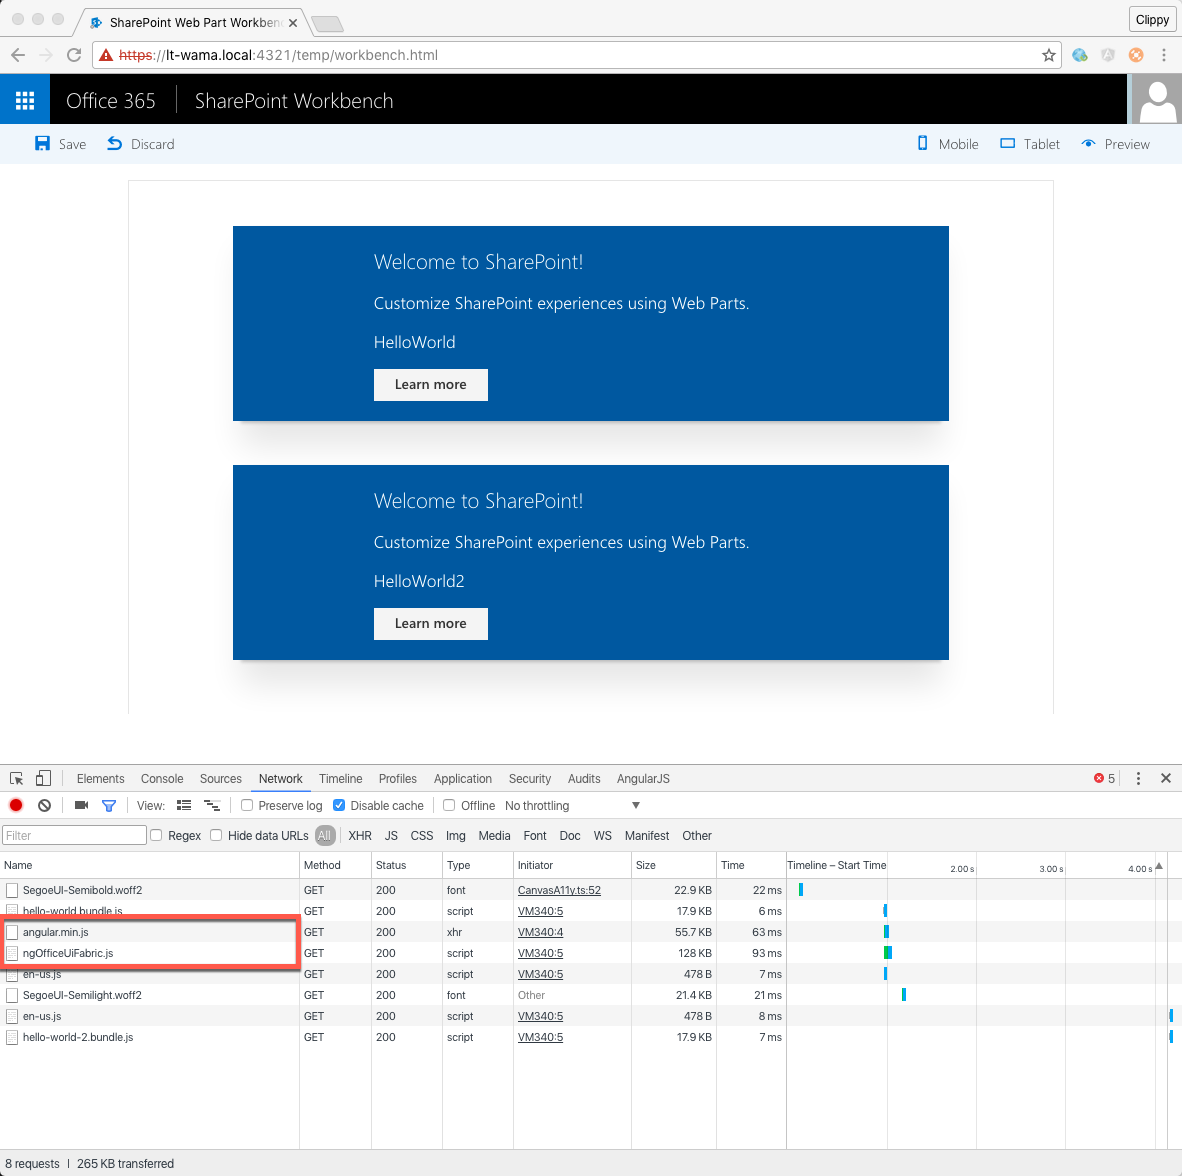 SharePoint Workbench opened with Chrome Developer Tools showing network stats for the current request